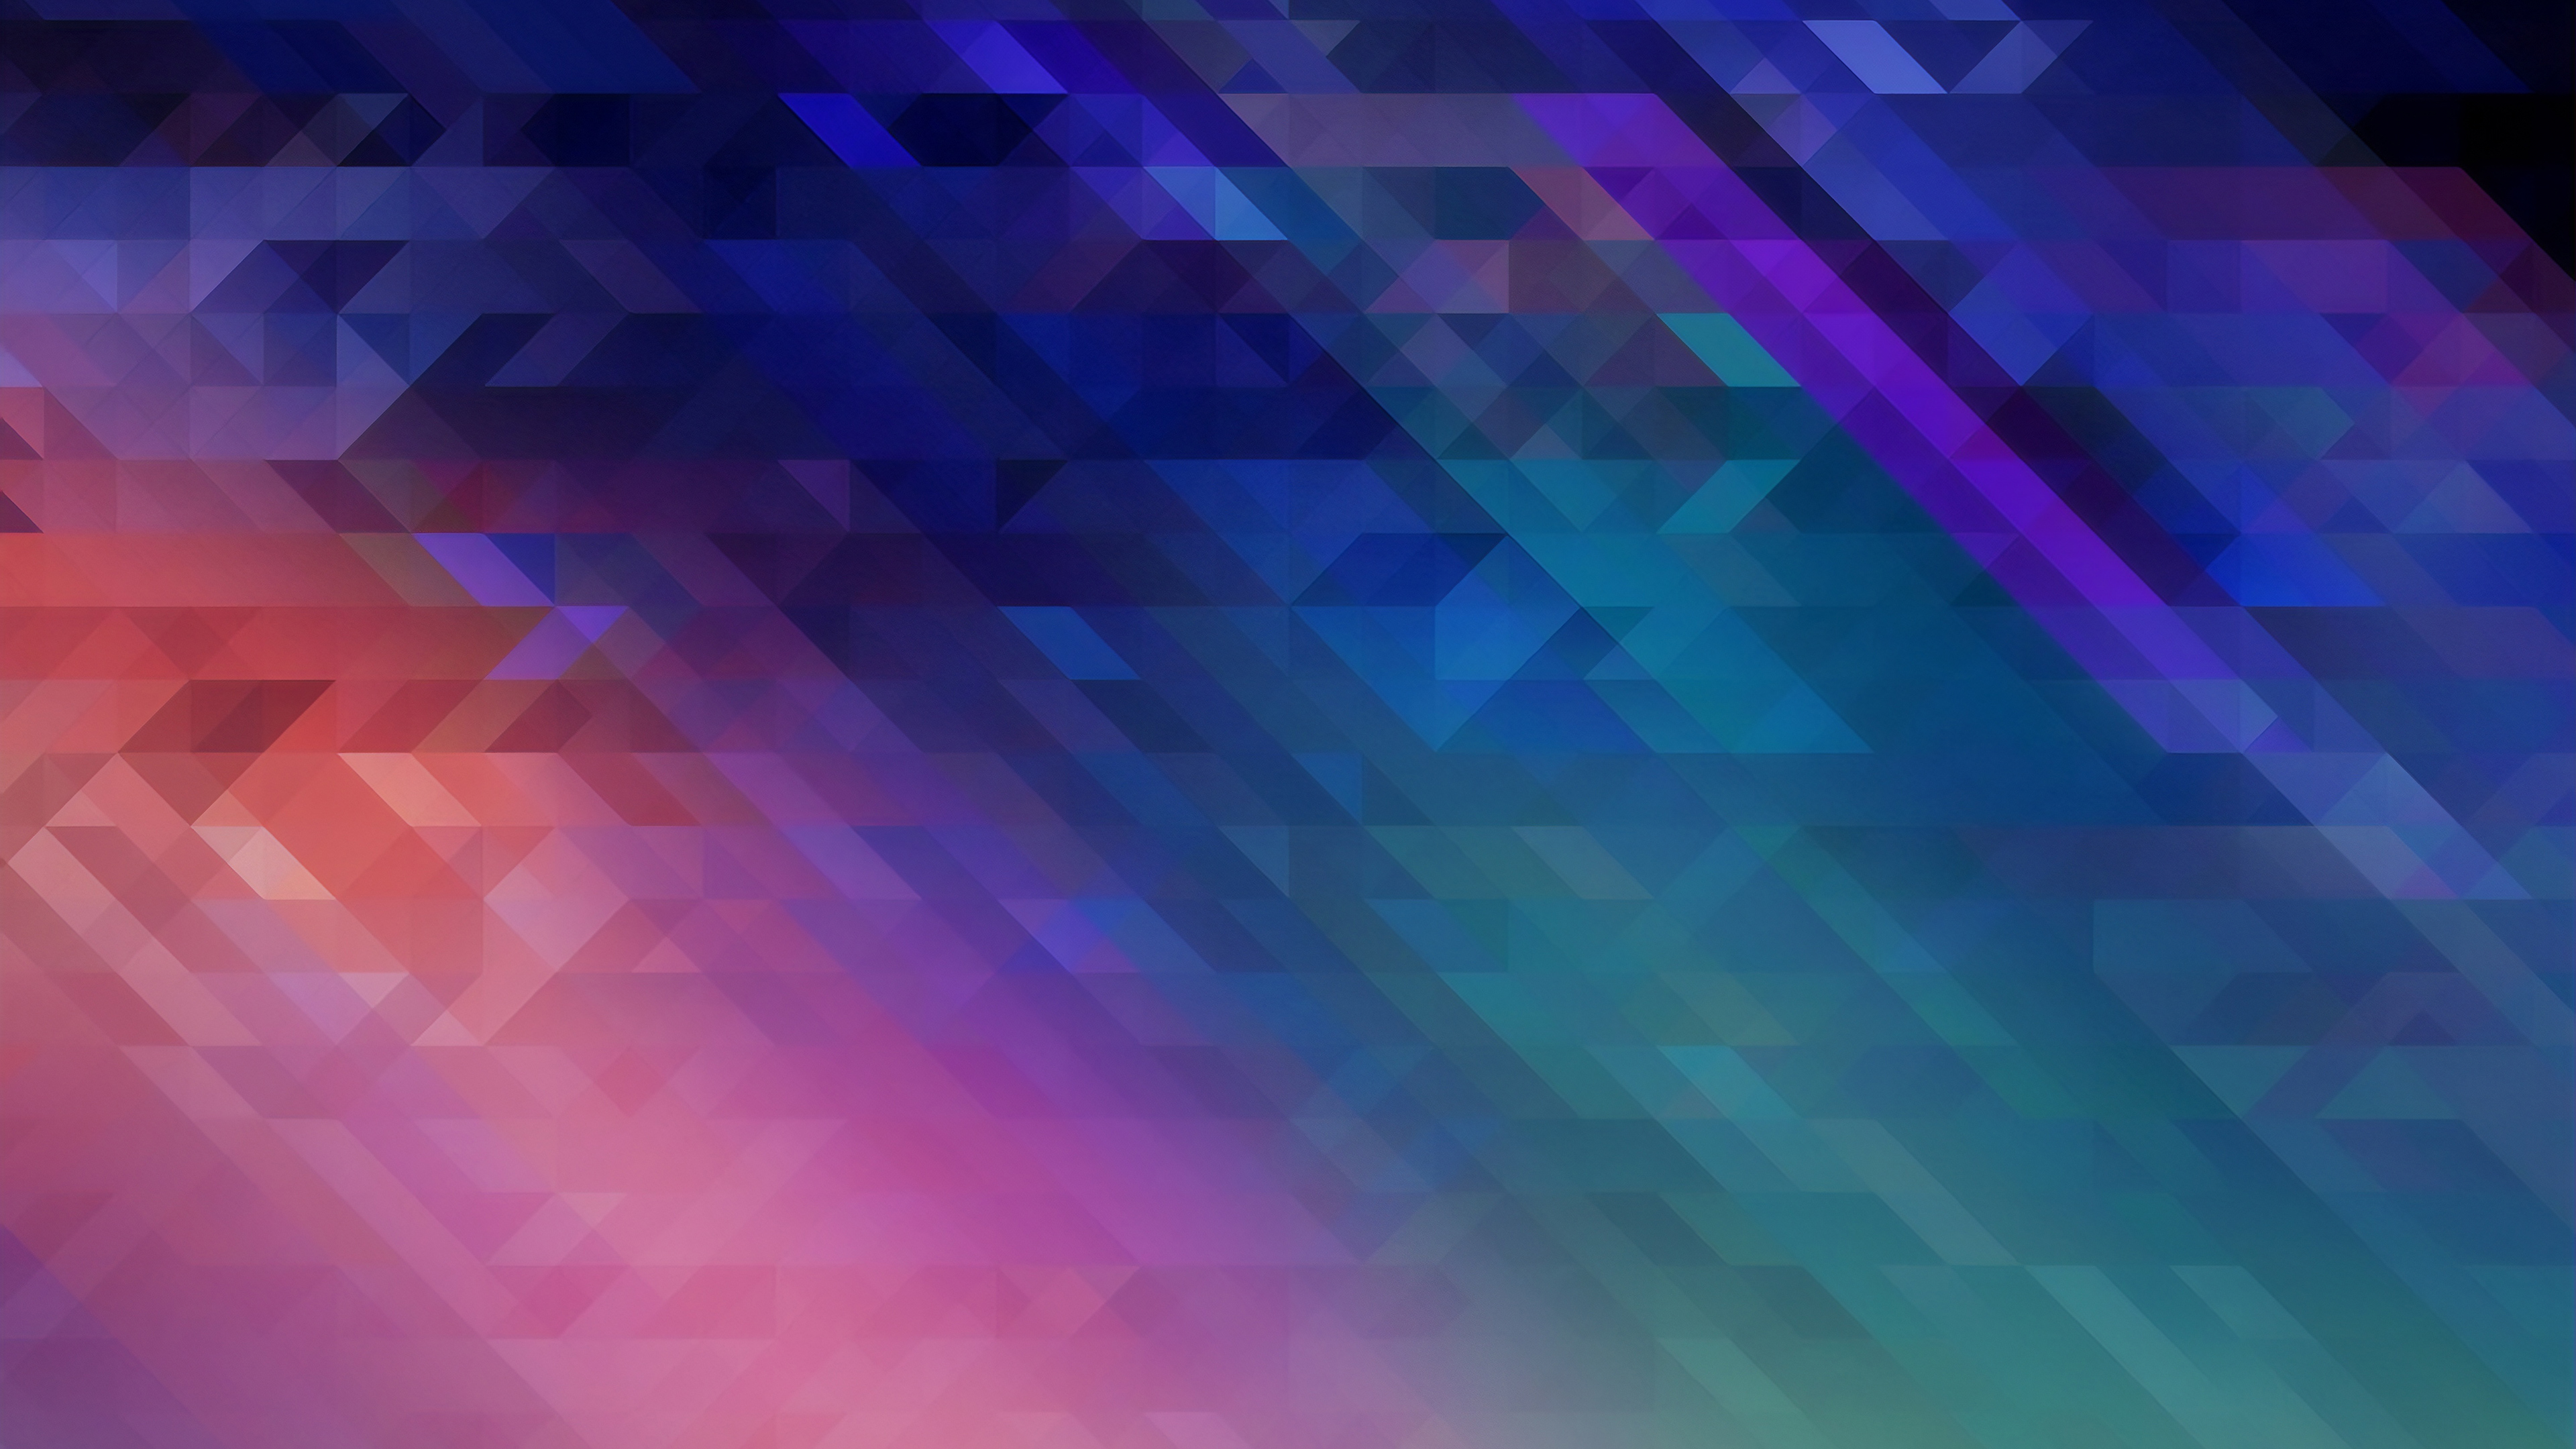 Abstract Images Wallpapers